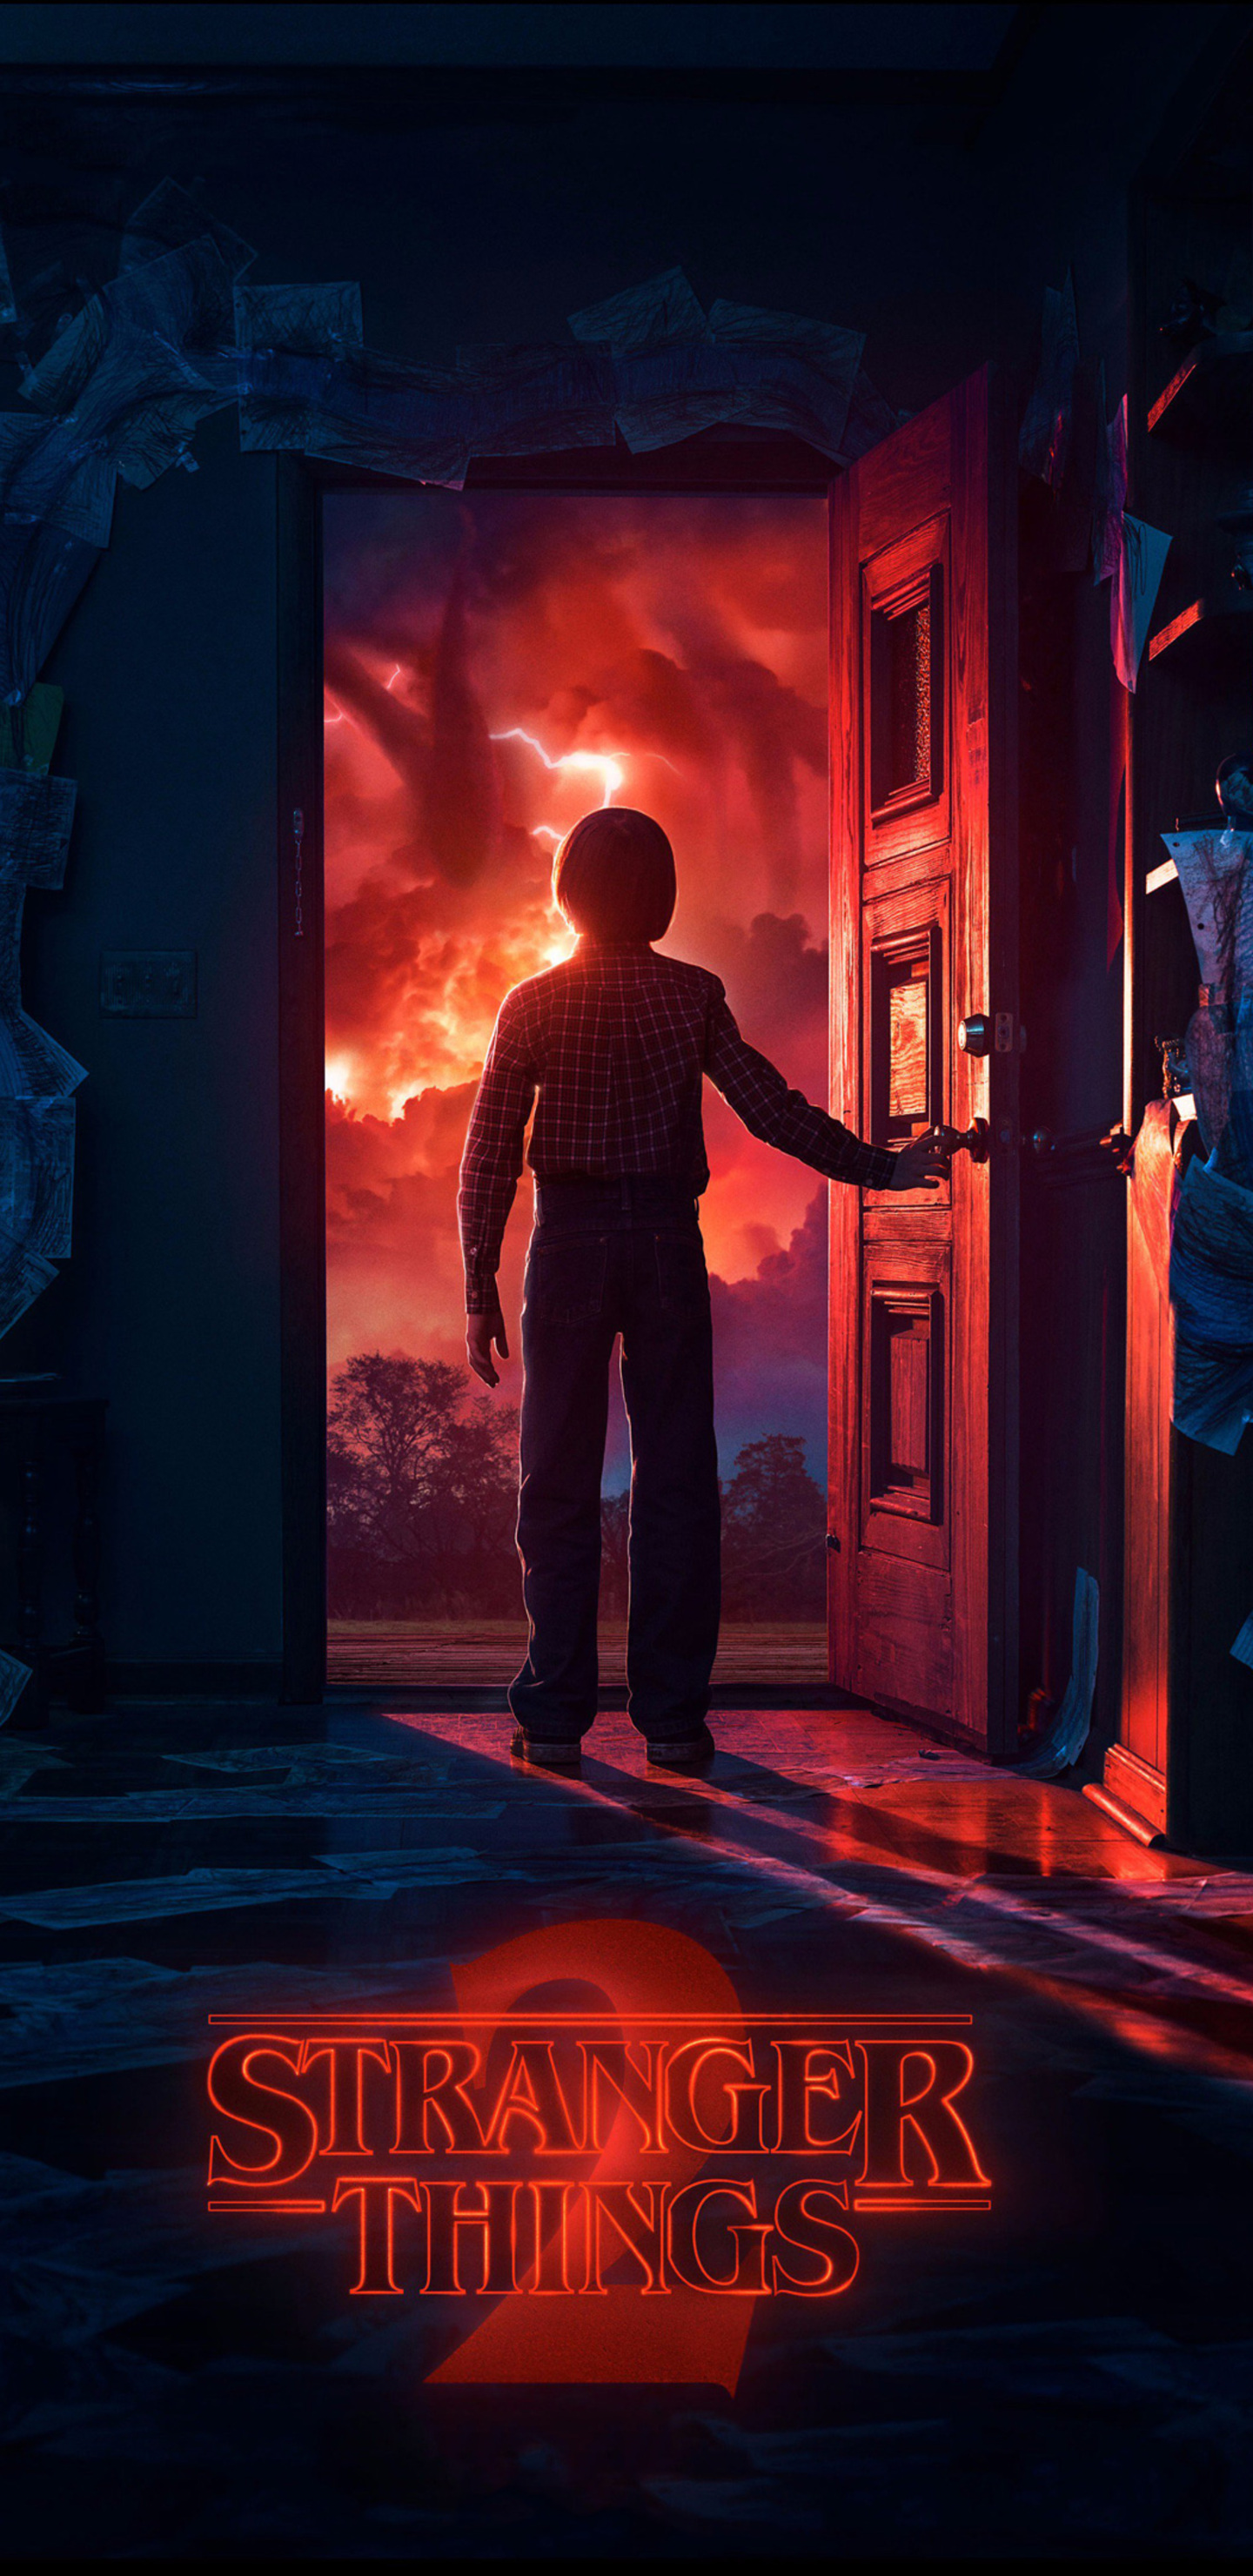 stranger-things-season-2-2017-0v.jpg